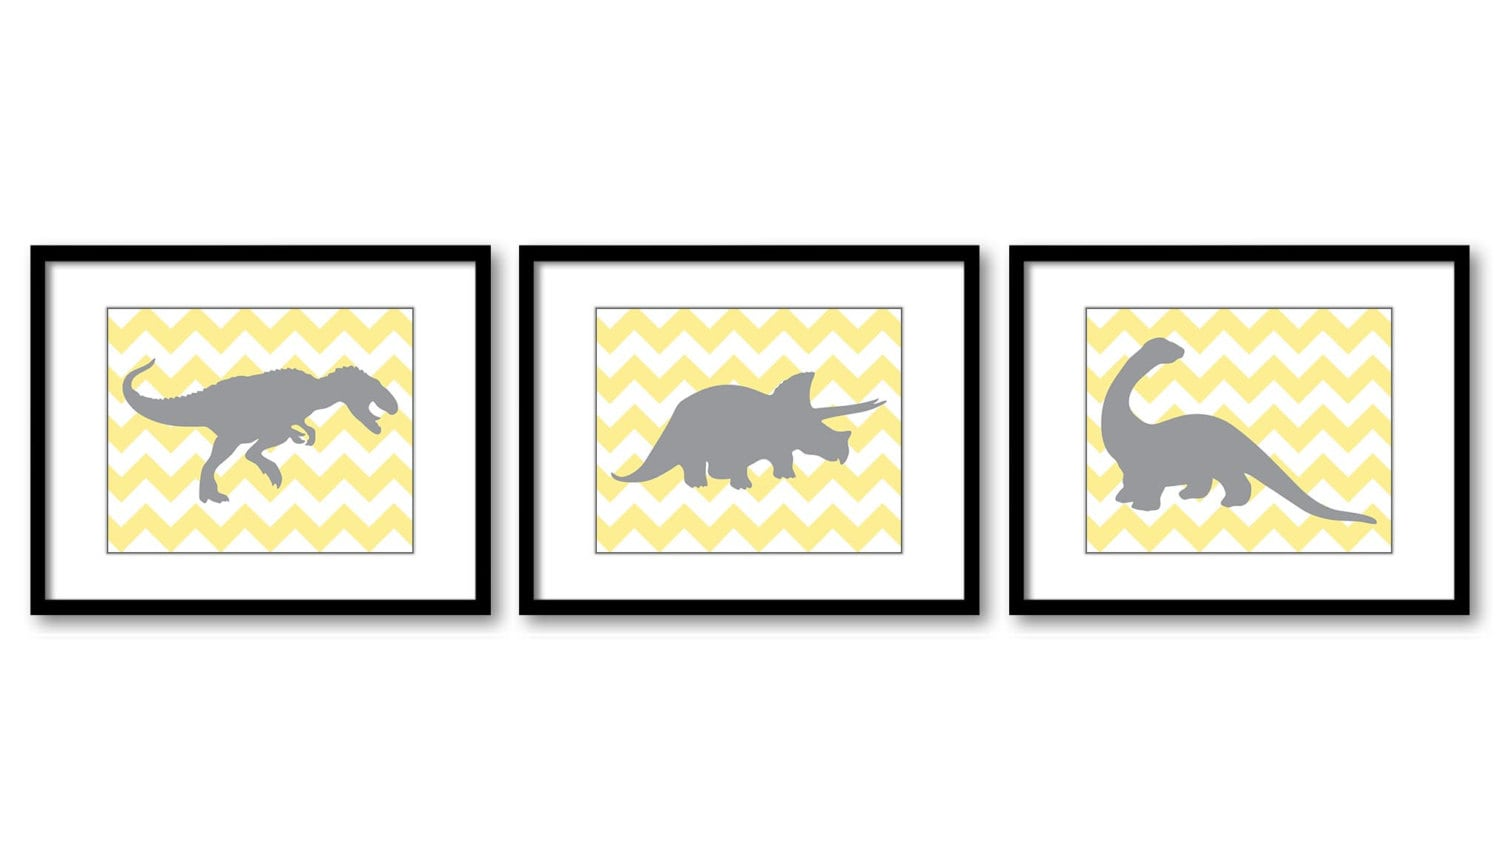 Dinosaur Nursery Art Dinosaurs Prints Set of 3 Prints Yellow Grey Chevron Tyrannosaurus Rex Tricerat